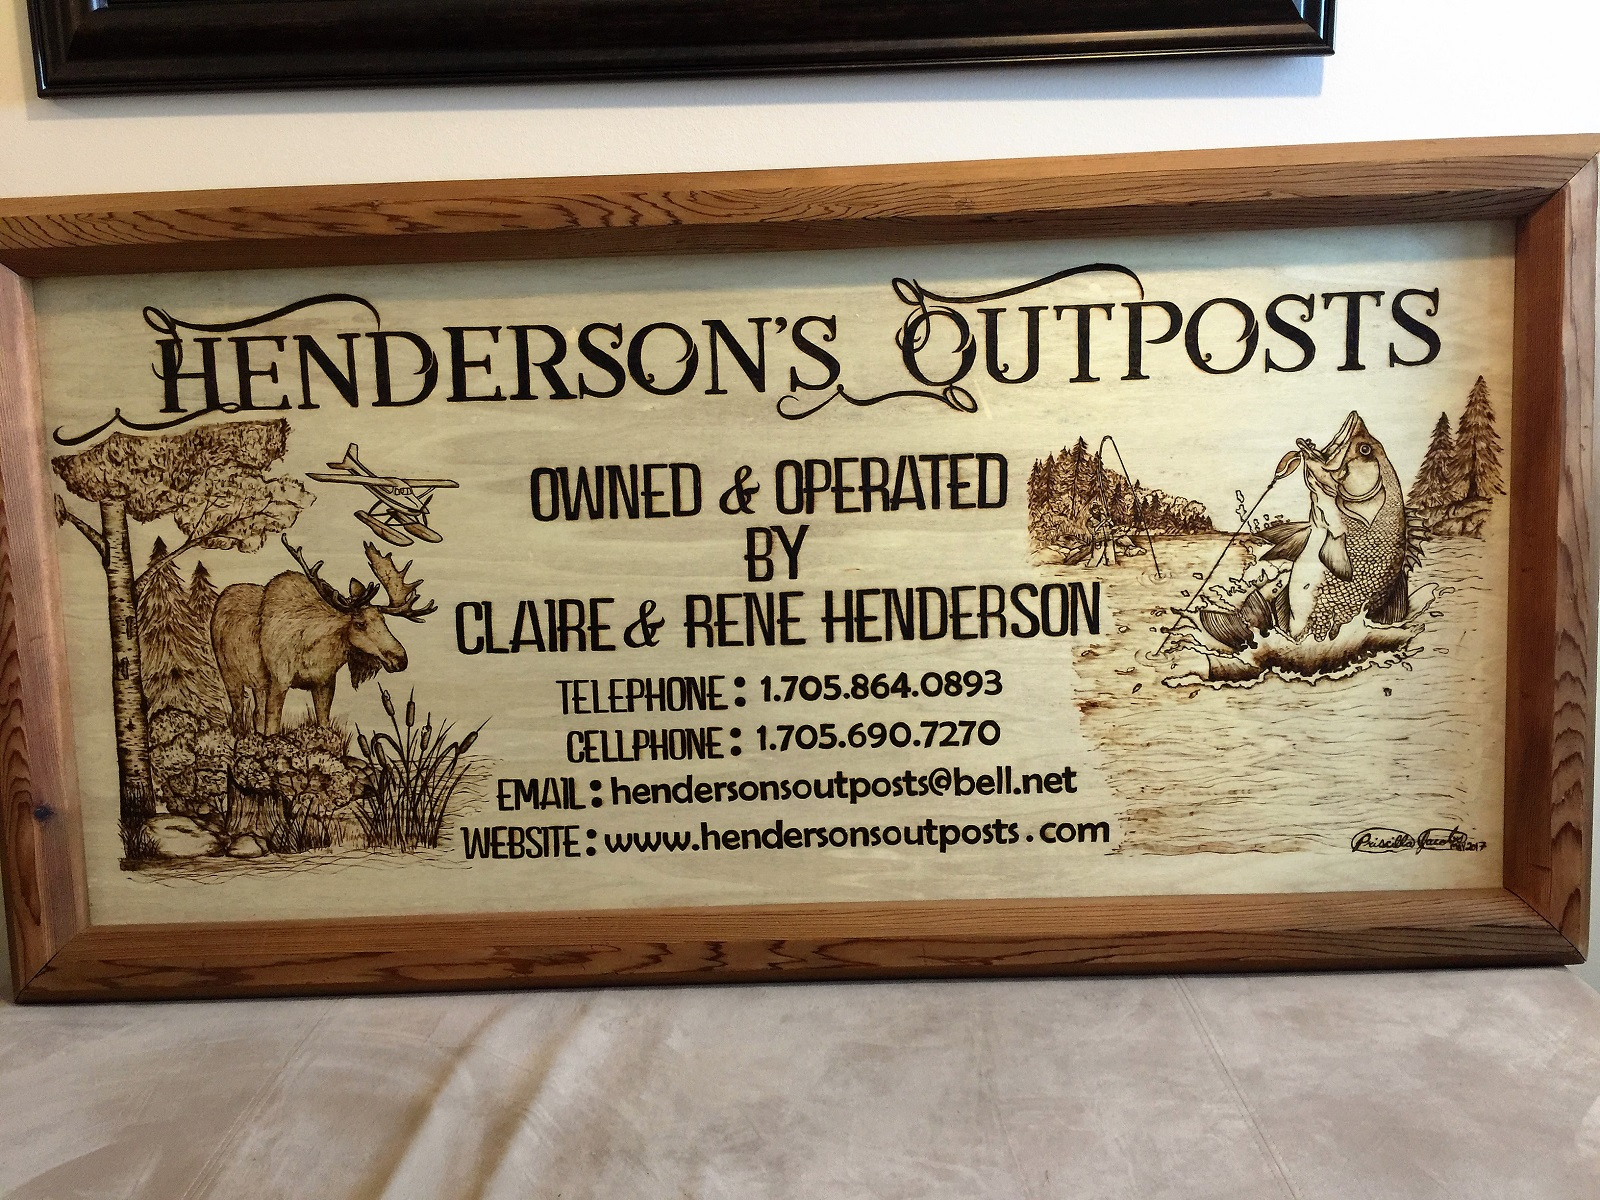 Henderson's Outposts